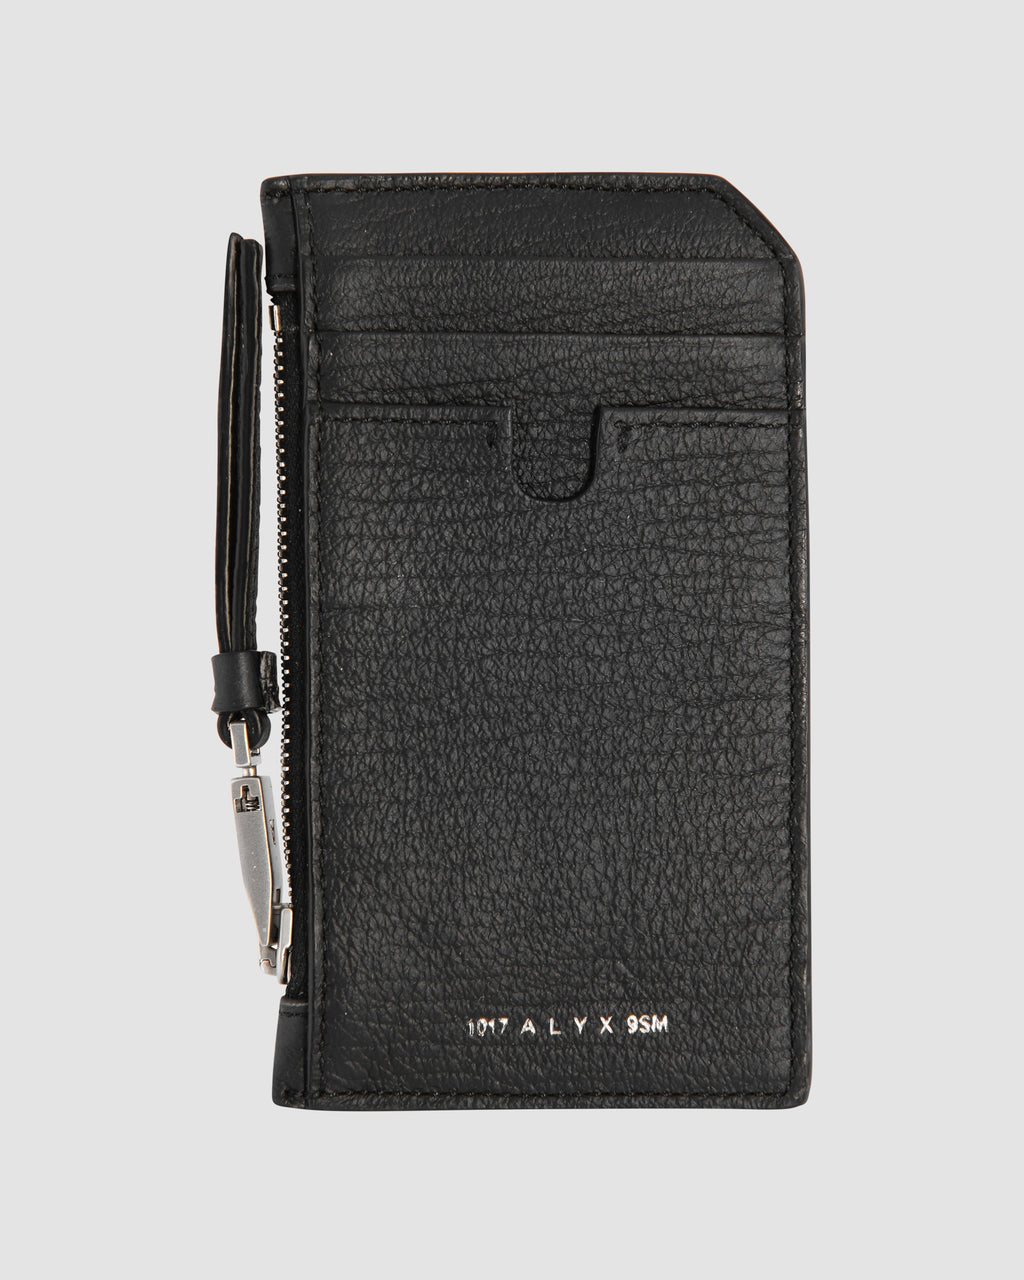 1017 ALYX 9SM | DANI CARD HOLDER | Wallet | Accessories, F19, Man, Wallet, Woman